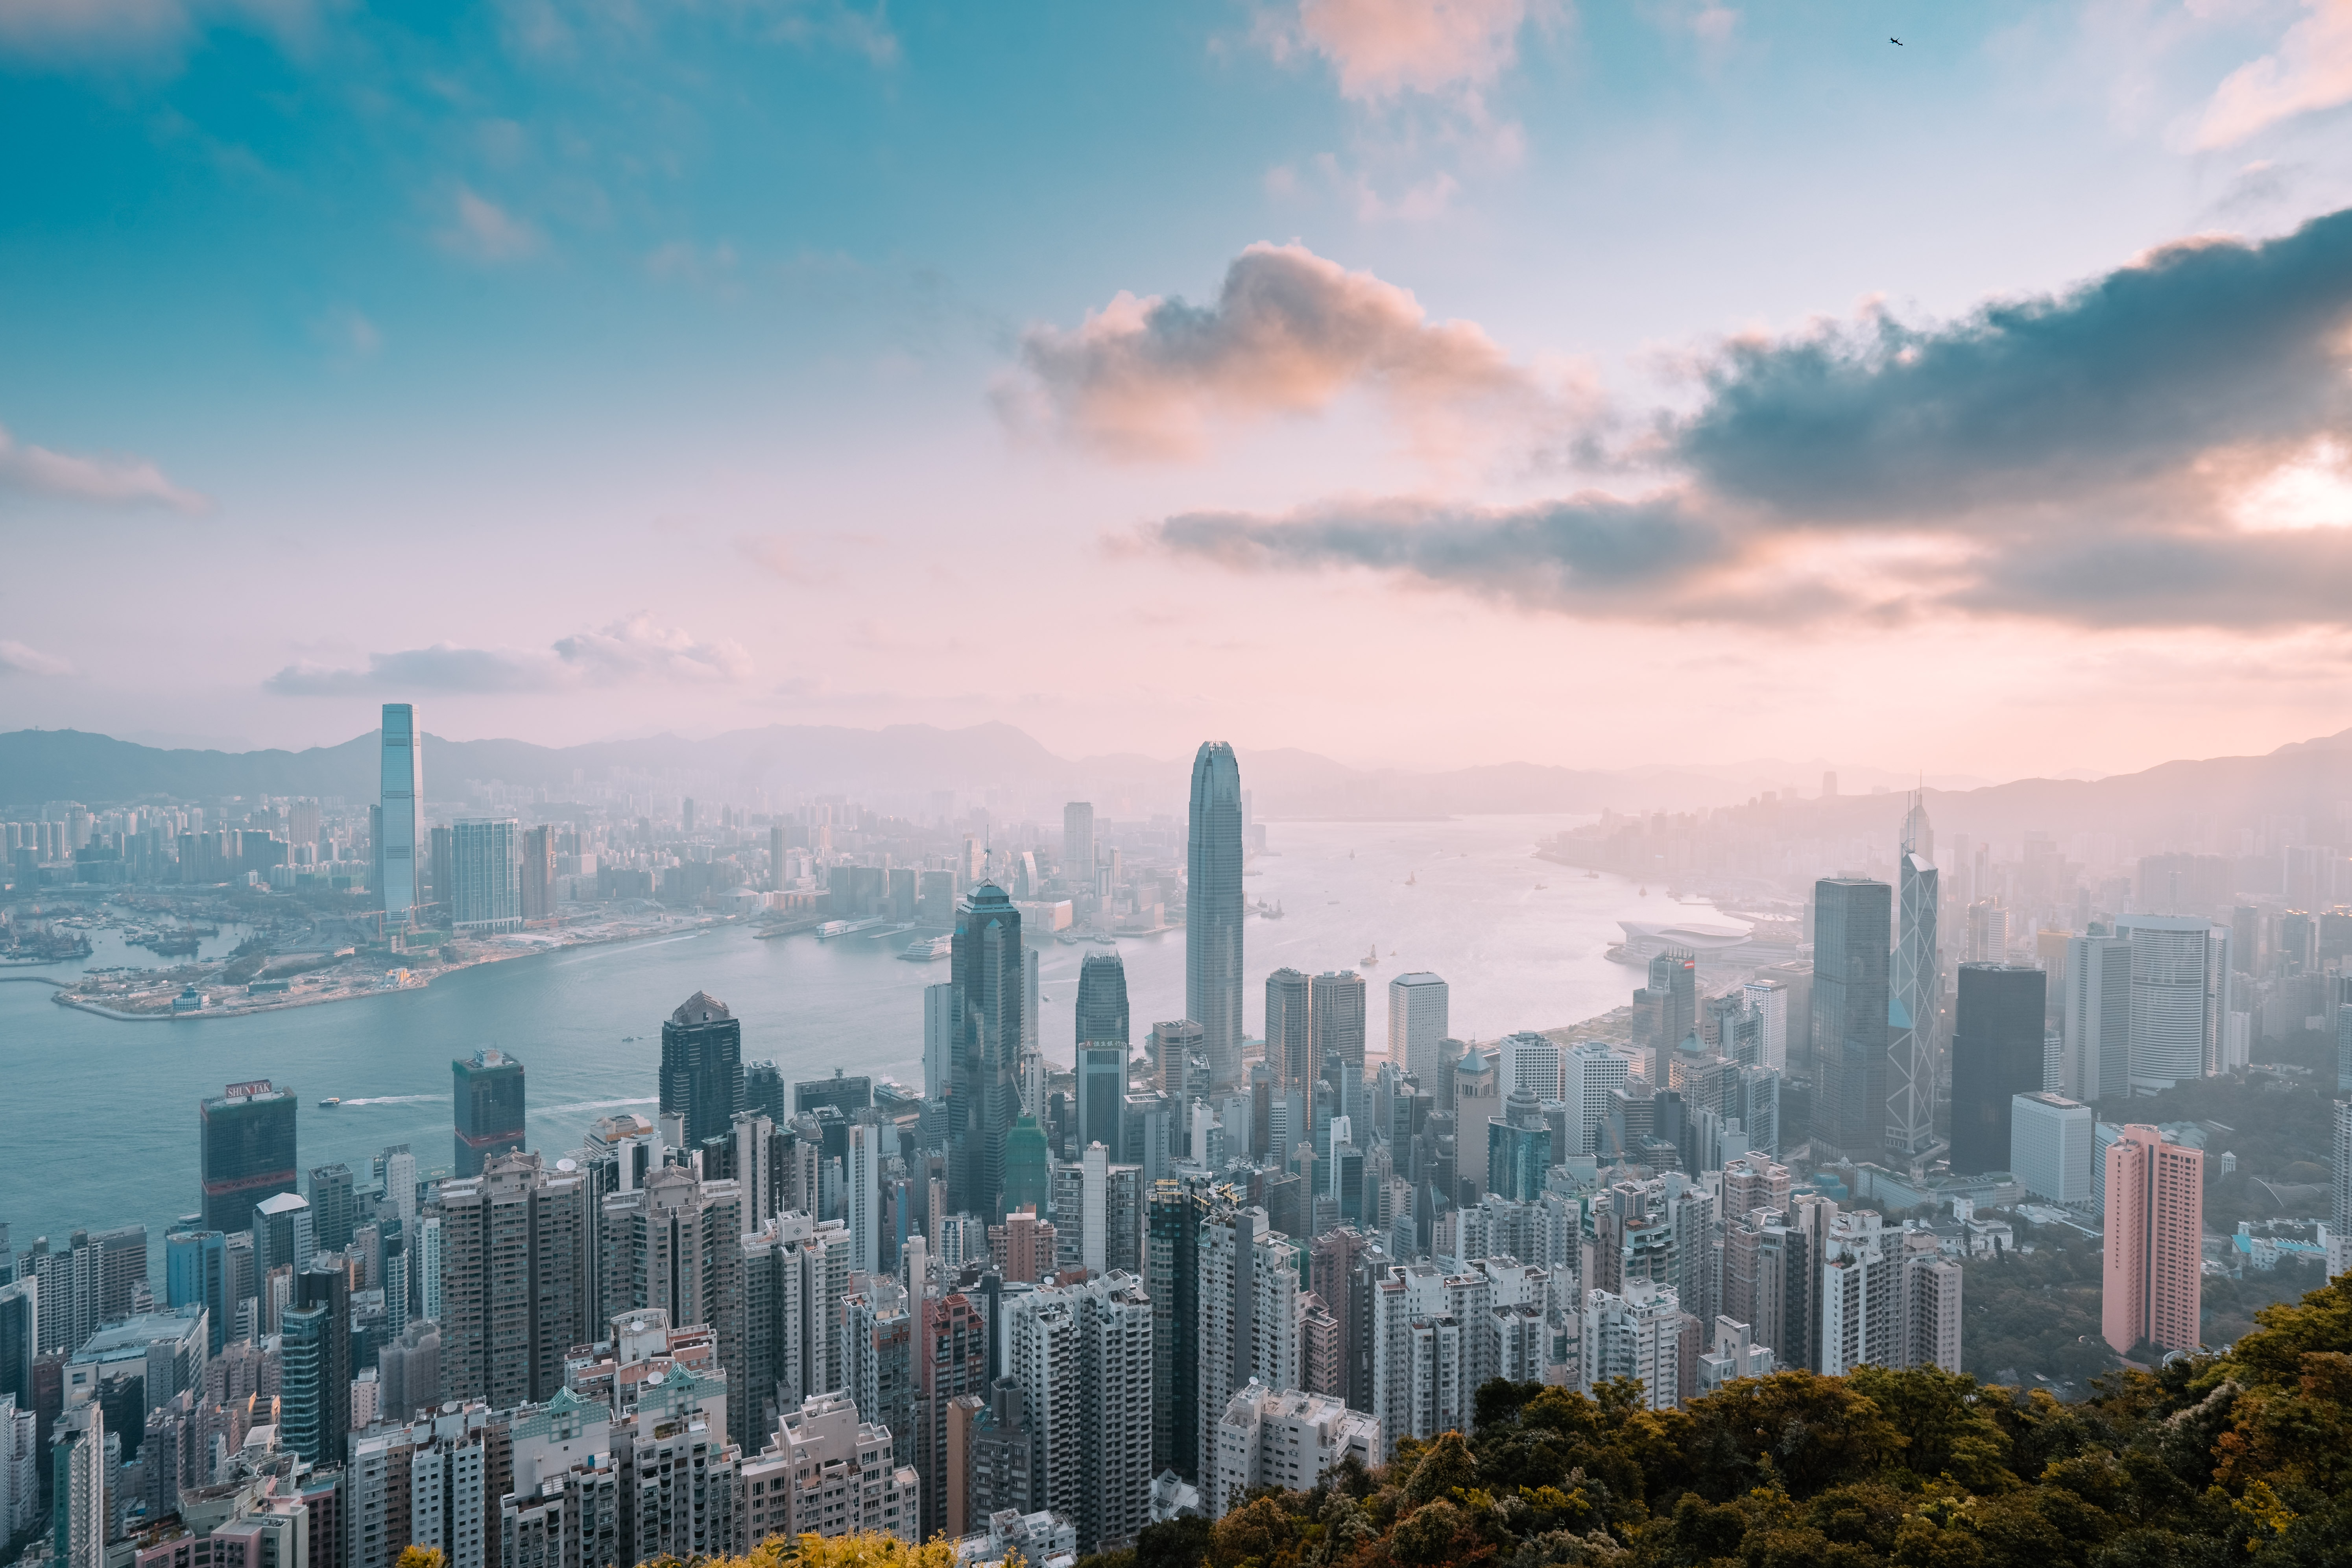 A morning view of the Hong Kong skyline.